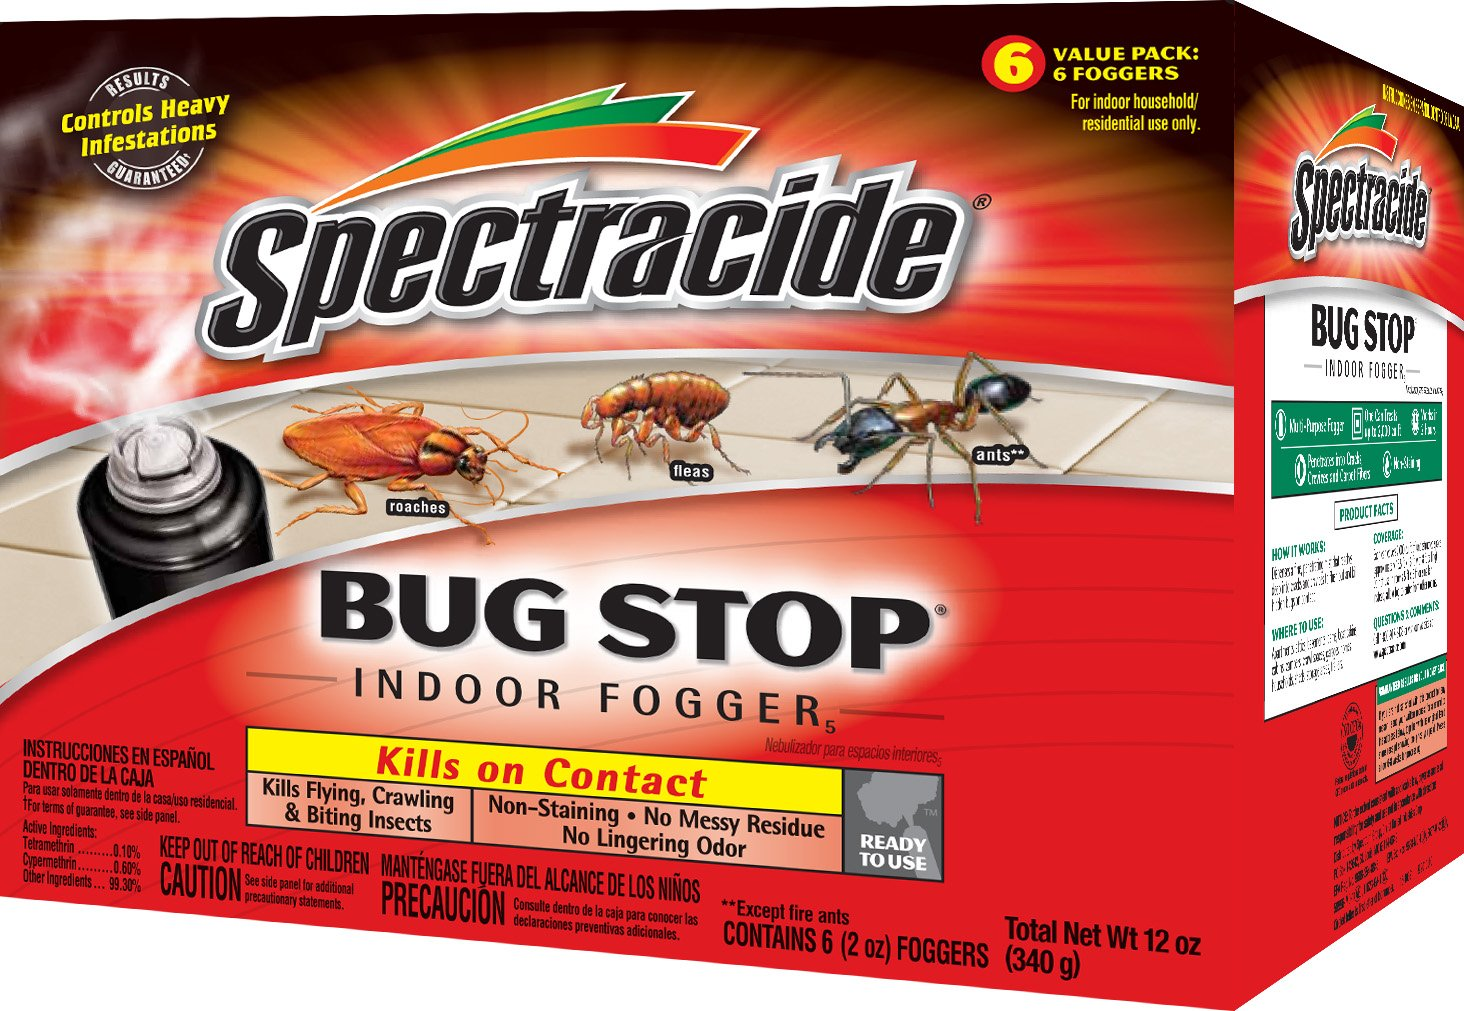 Amazon.com : Spectracide Bug Stop Indoor Fogger5 (HG-67759) (6 - 2 ...